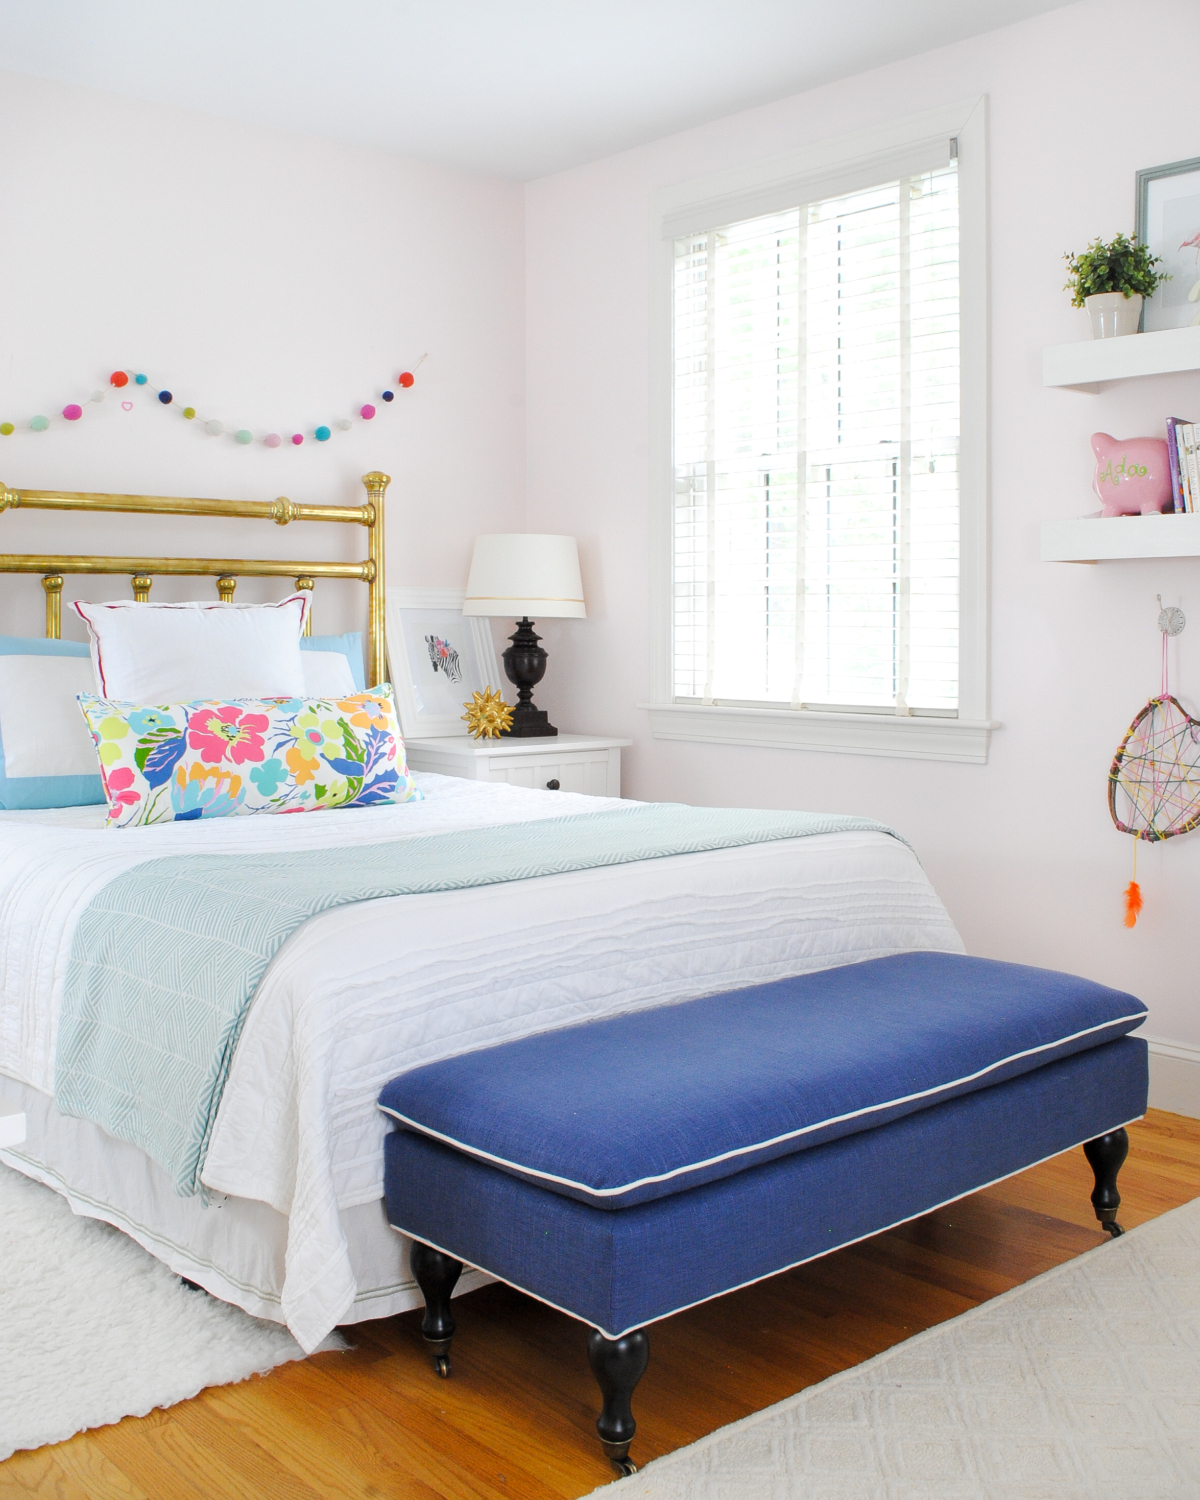 Big Girl Bedroom Update - New Mattress and Bedding - The Chronicles ...